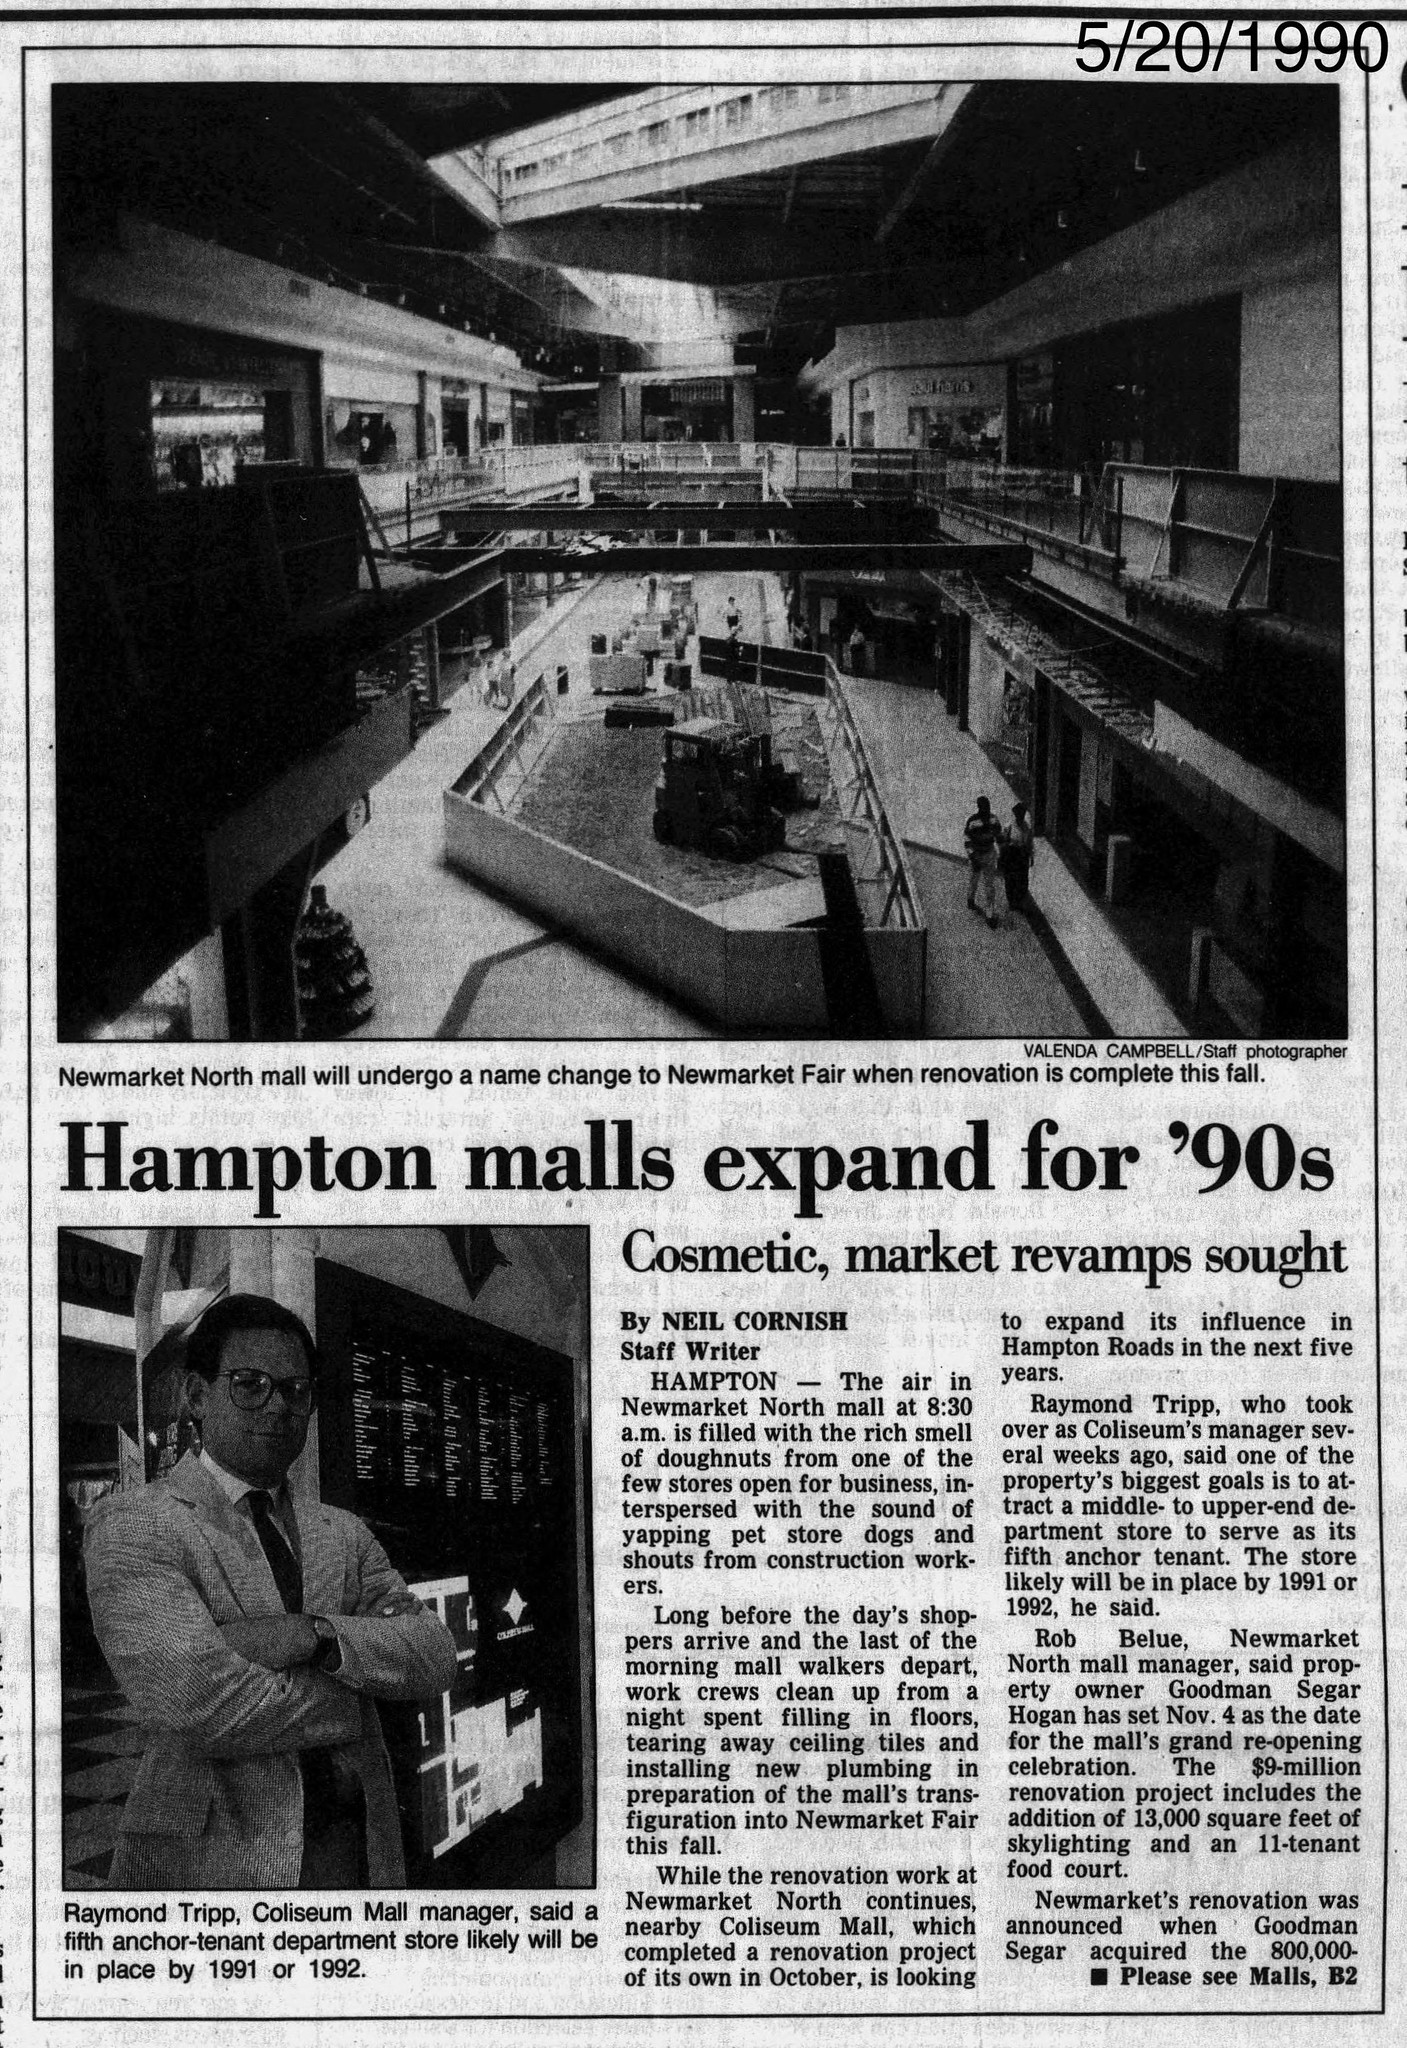 """Hampton Malls Expand For '90s"" {daily press, May 20, 1990}"